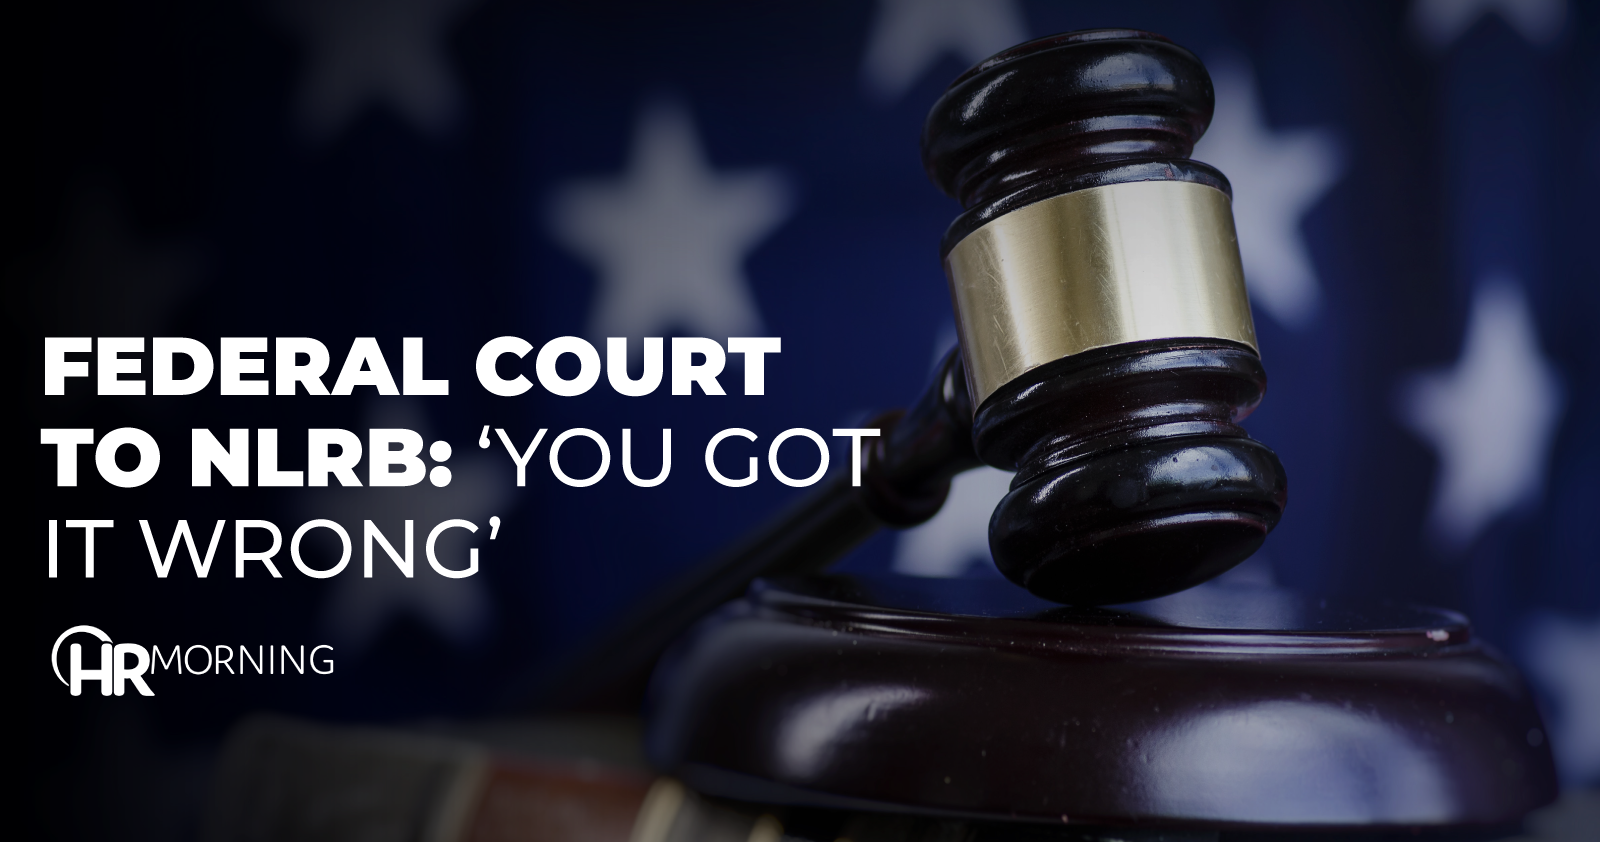 Federal Court To NLRB You Got It Wrong